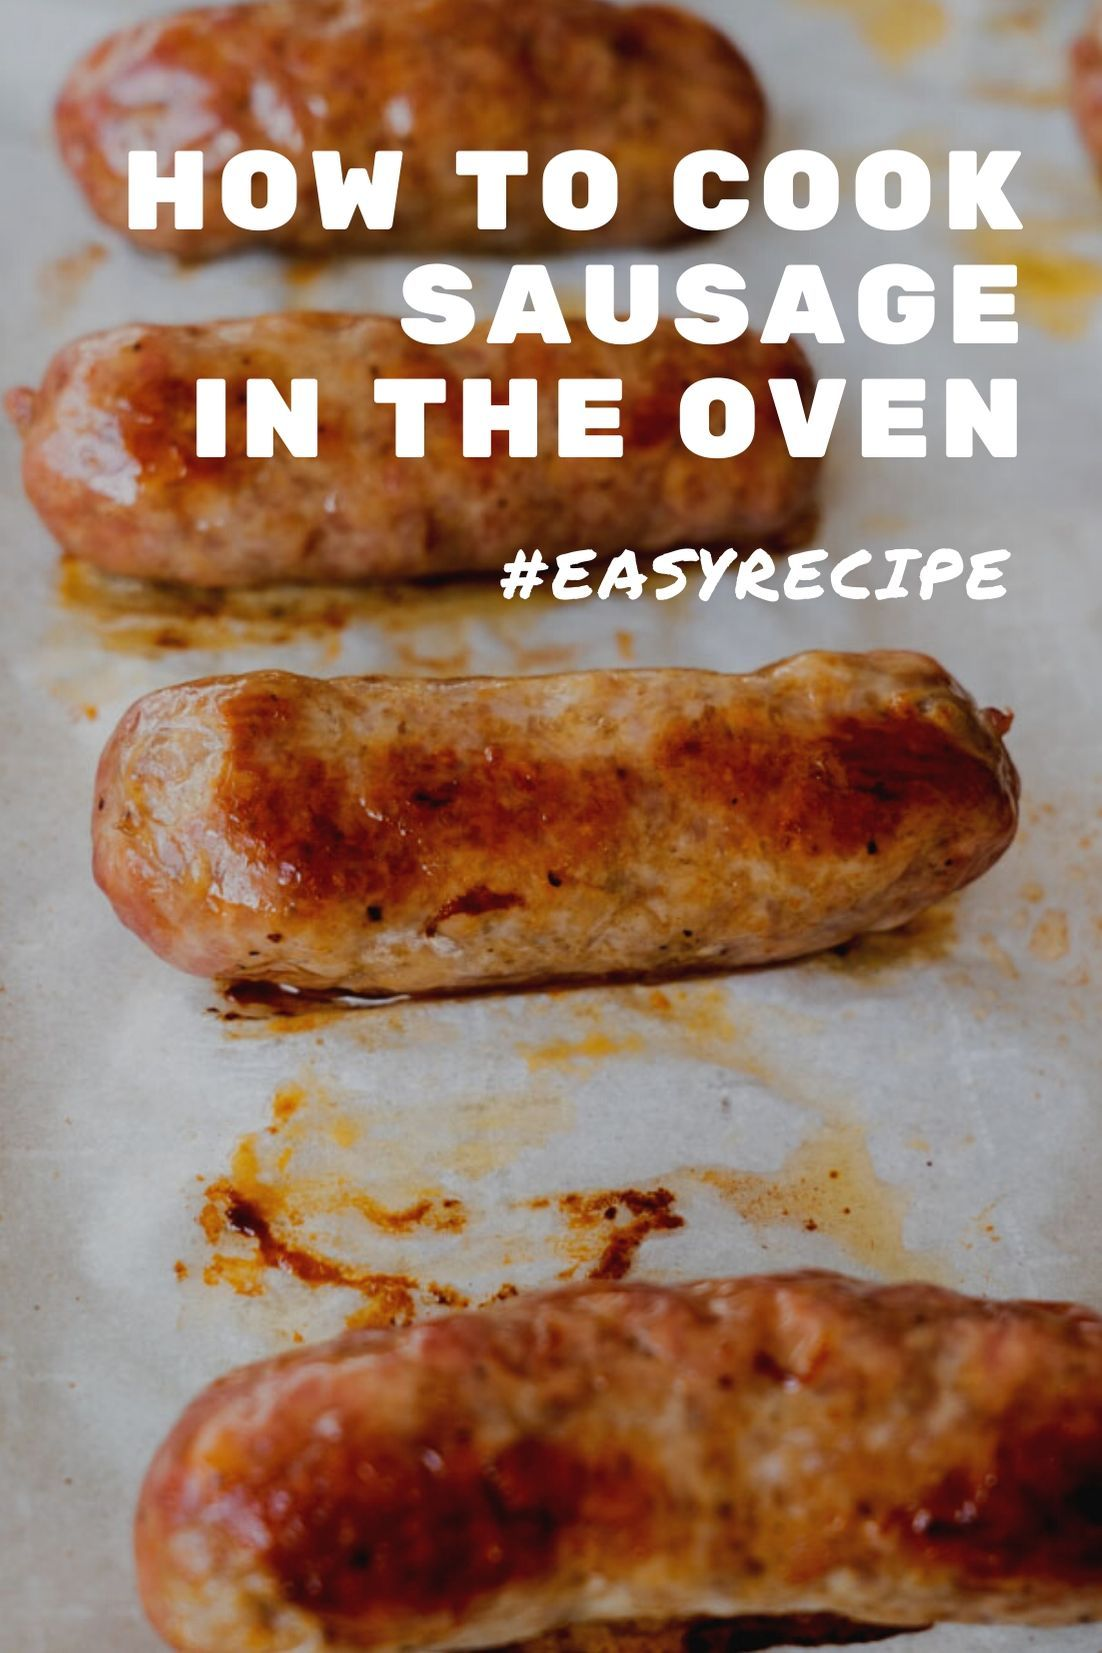 How To Cook Sausage In The Oven Recipe How To Cook Sausage Sausages In The Oven Cooking